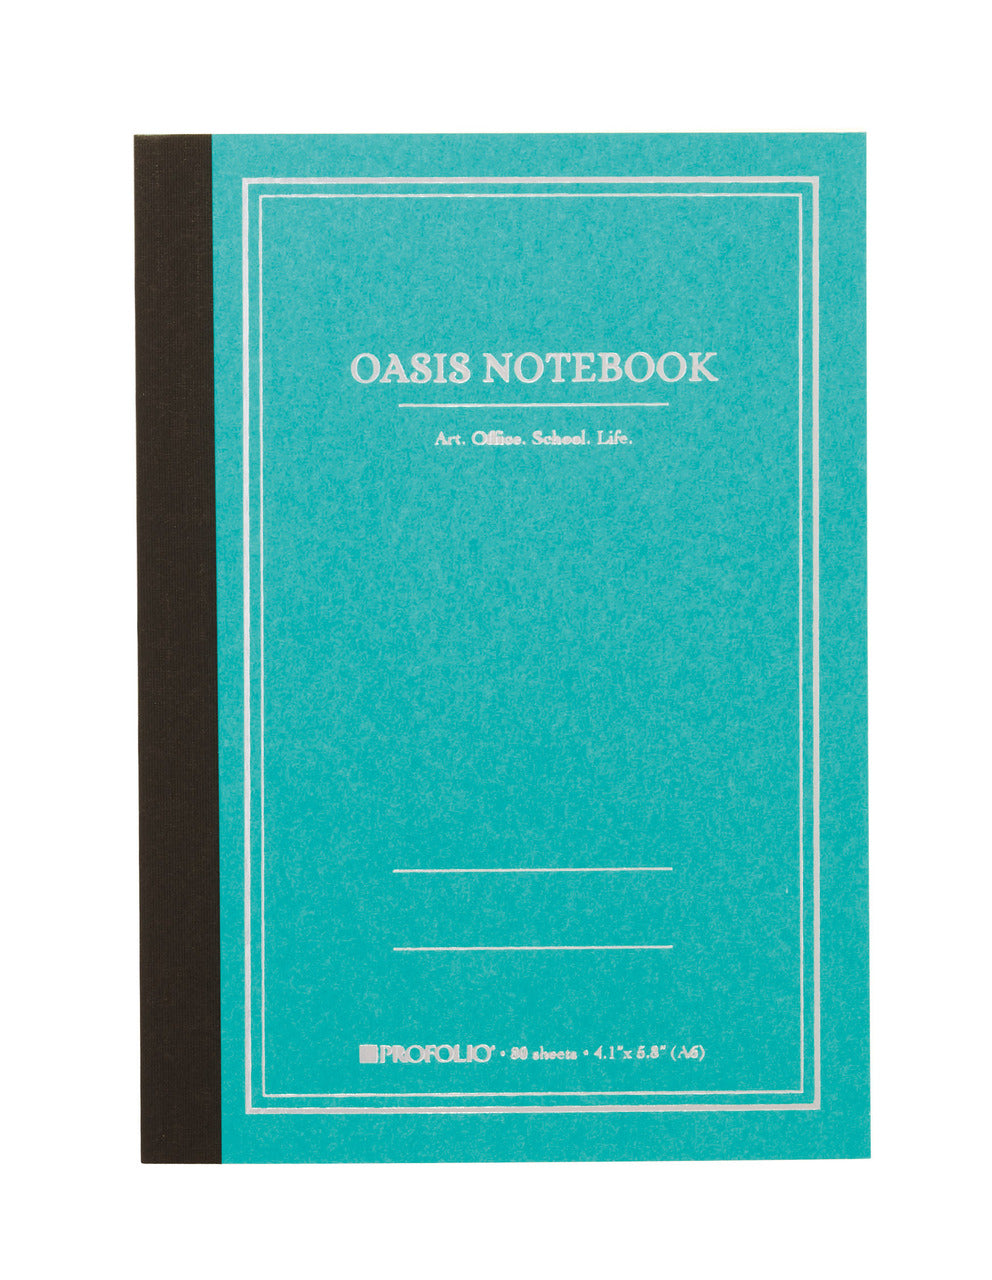 ProFolio Oasis Notebook in wintergreen.